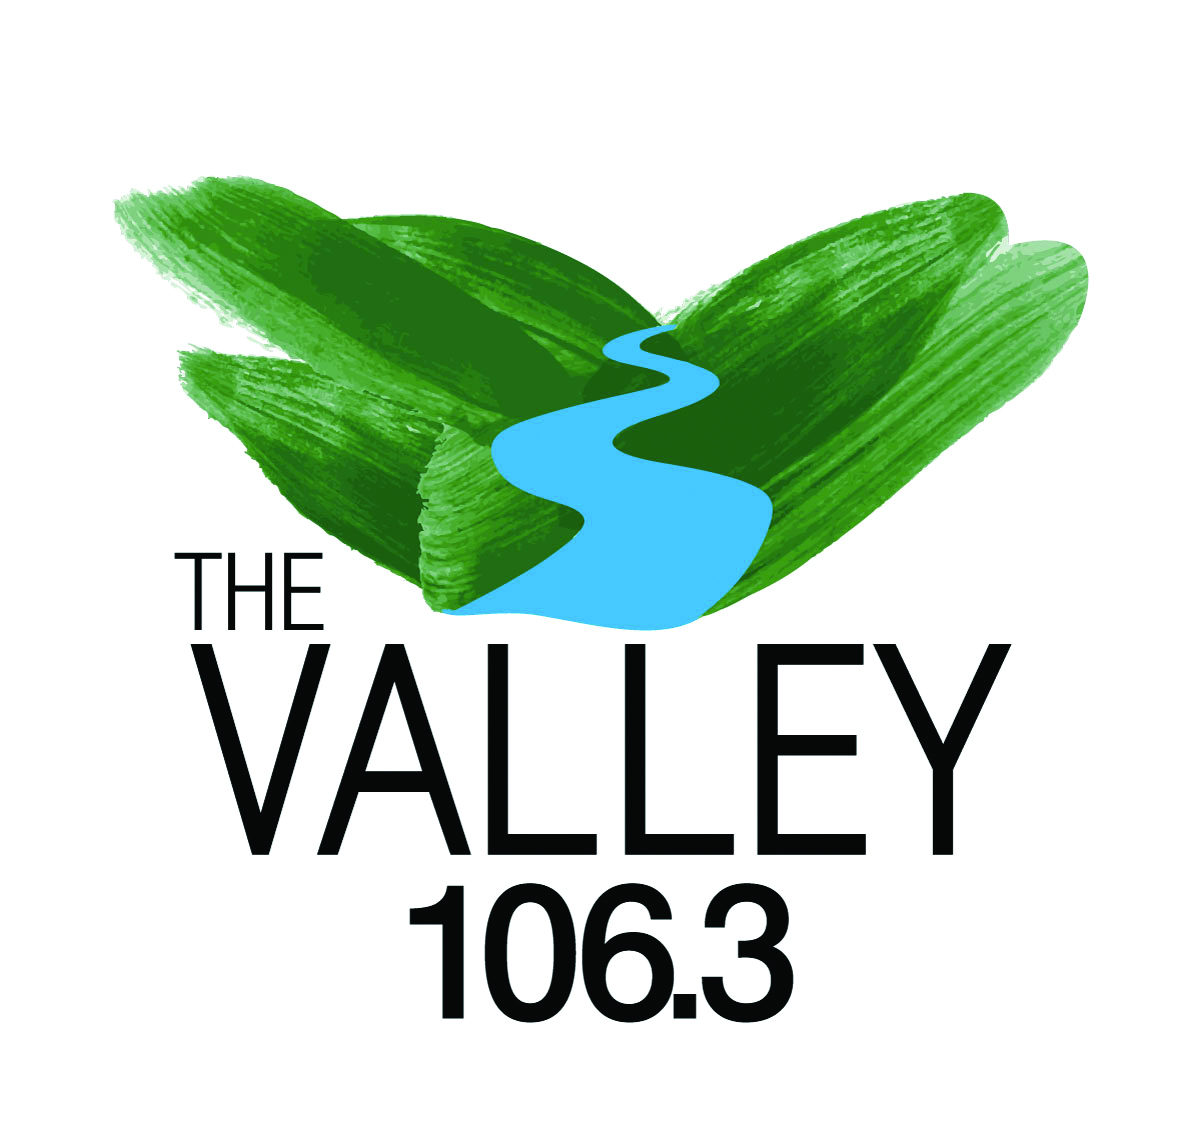 The Valley 106.3-logo